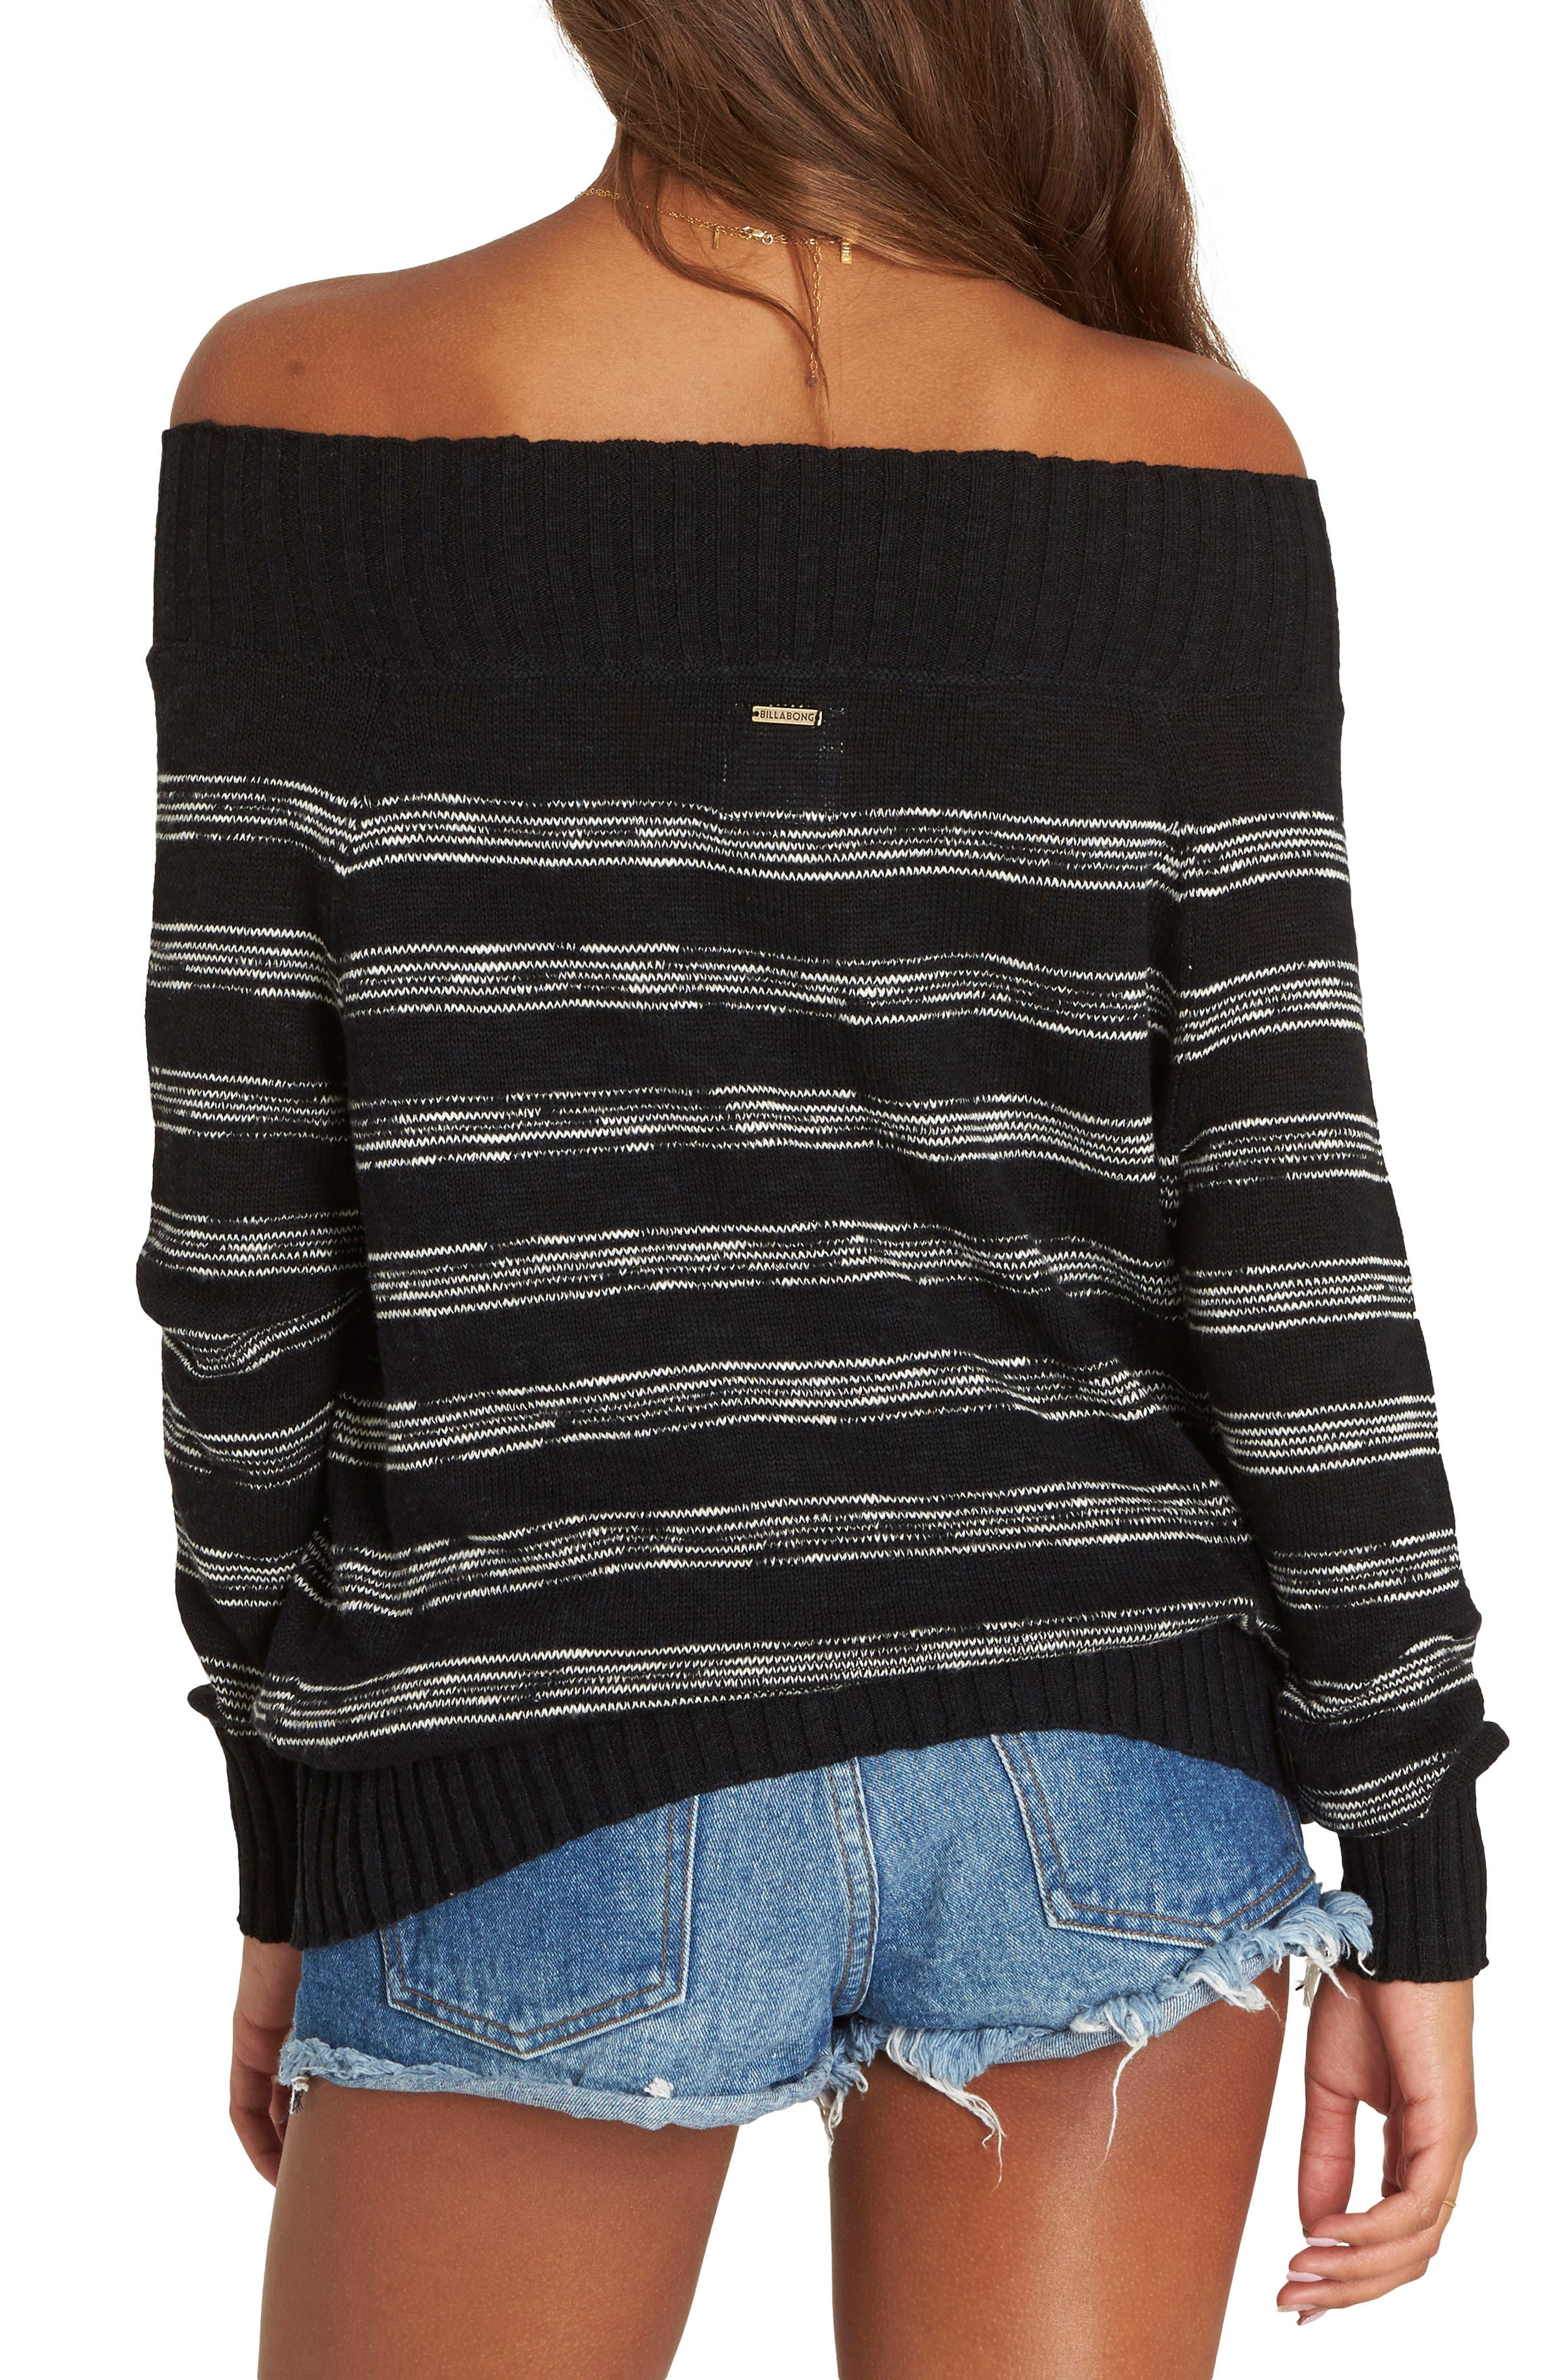 Snuggle Down Off the Shoulder Sweater,                             Alternate thumbnail 2, color,                             Black